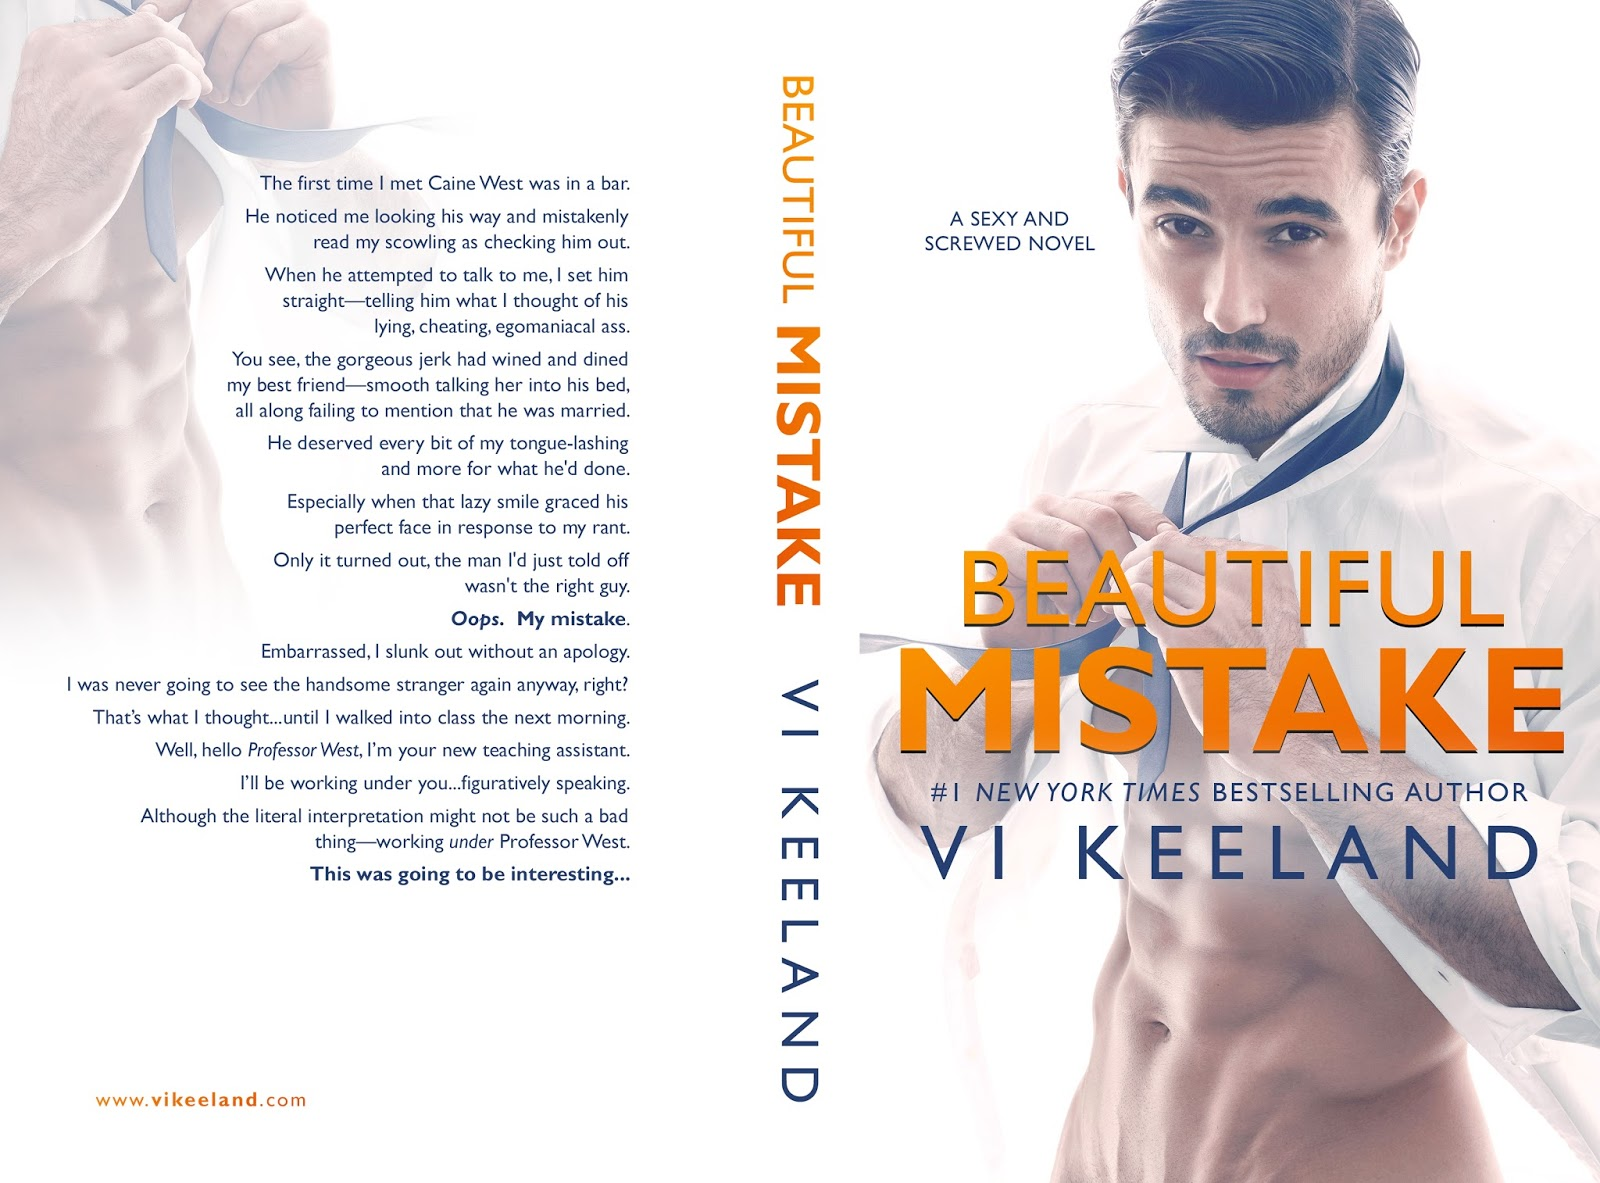 Vi Keeland Libros Reading Between The Wines Book Club Coverreveal Of Beautiful